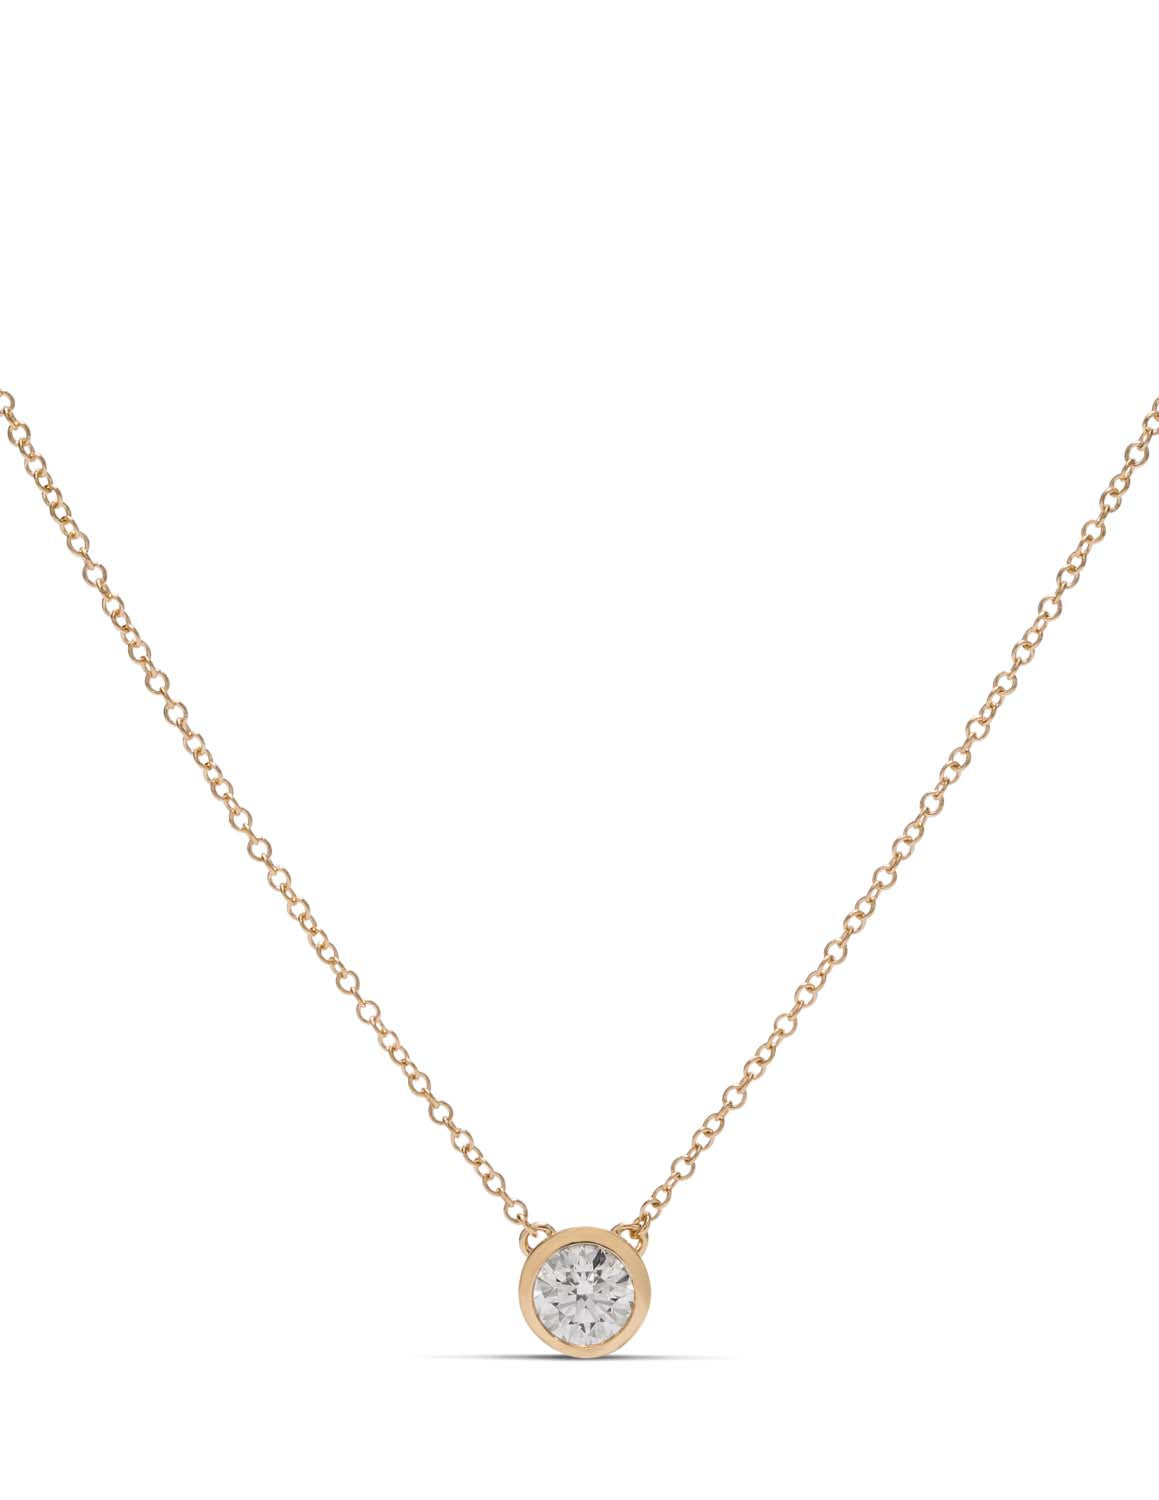 0.51 ct Hearts On Fire Diamond Bezel Necklace - Charles Koll Jewellers